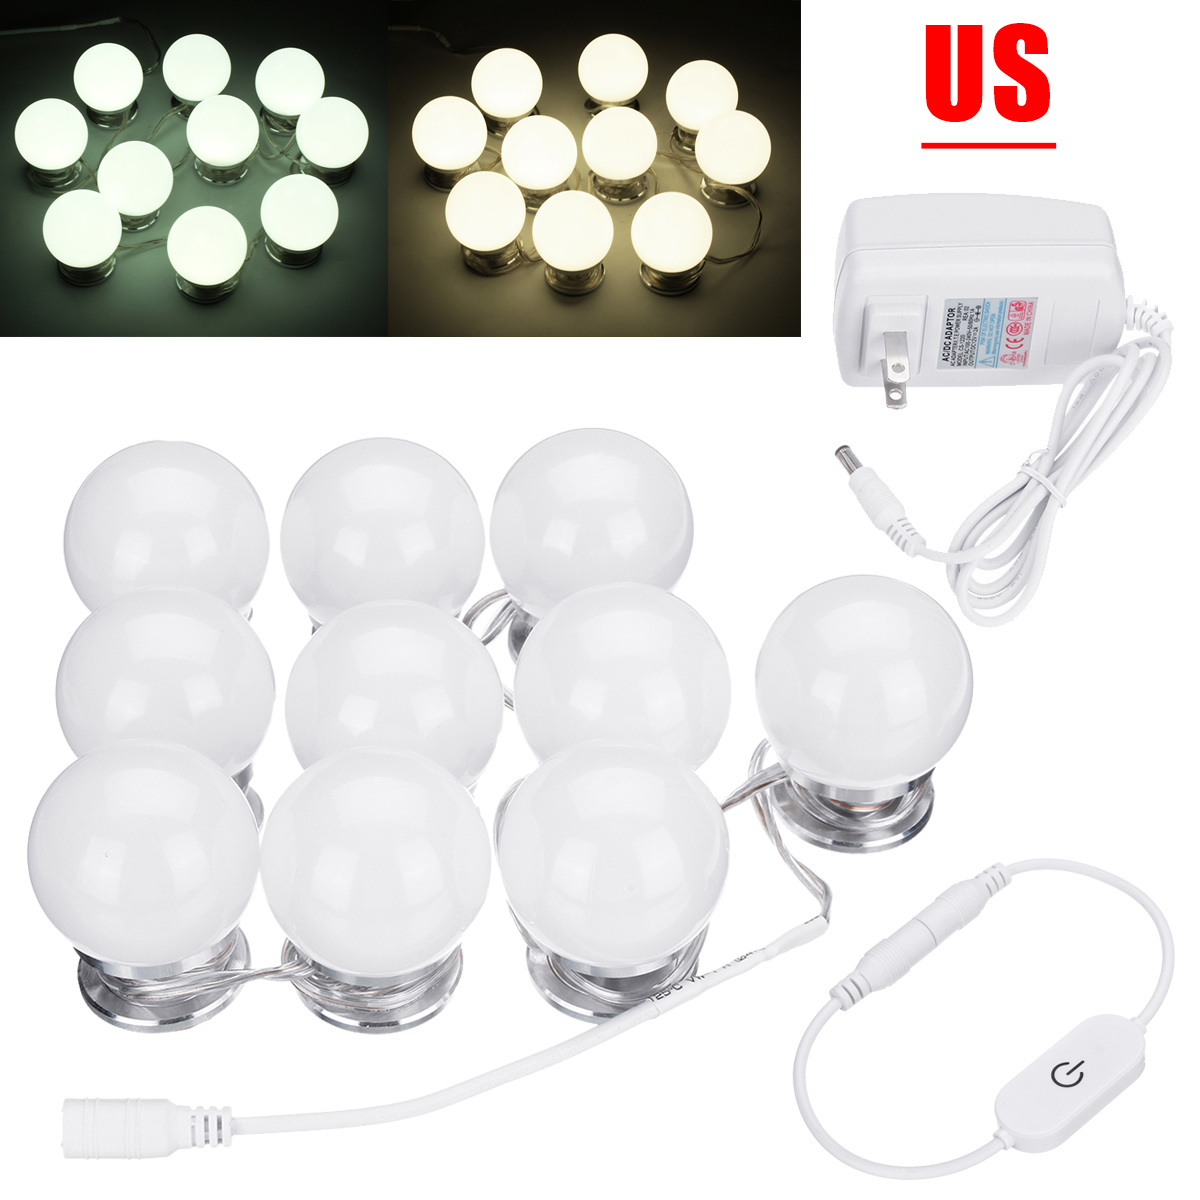 10pcs Makeup Mirror Vanity LED Light Bulbs Hollywood Style Cosmetic Lamp Dimmable for Dr ...